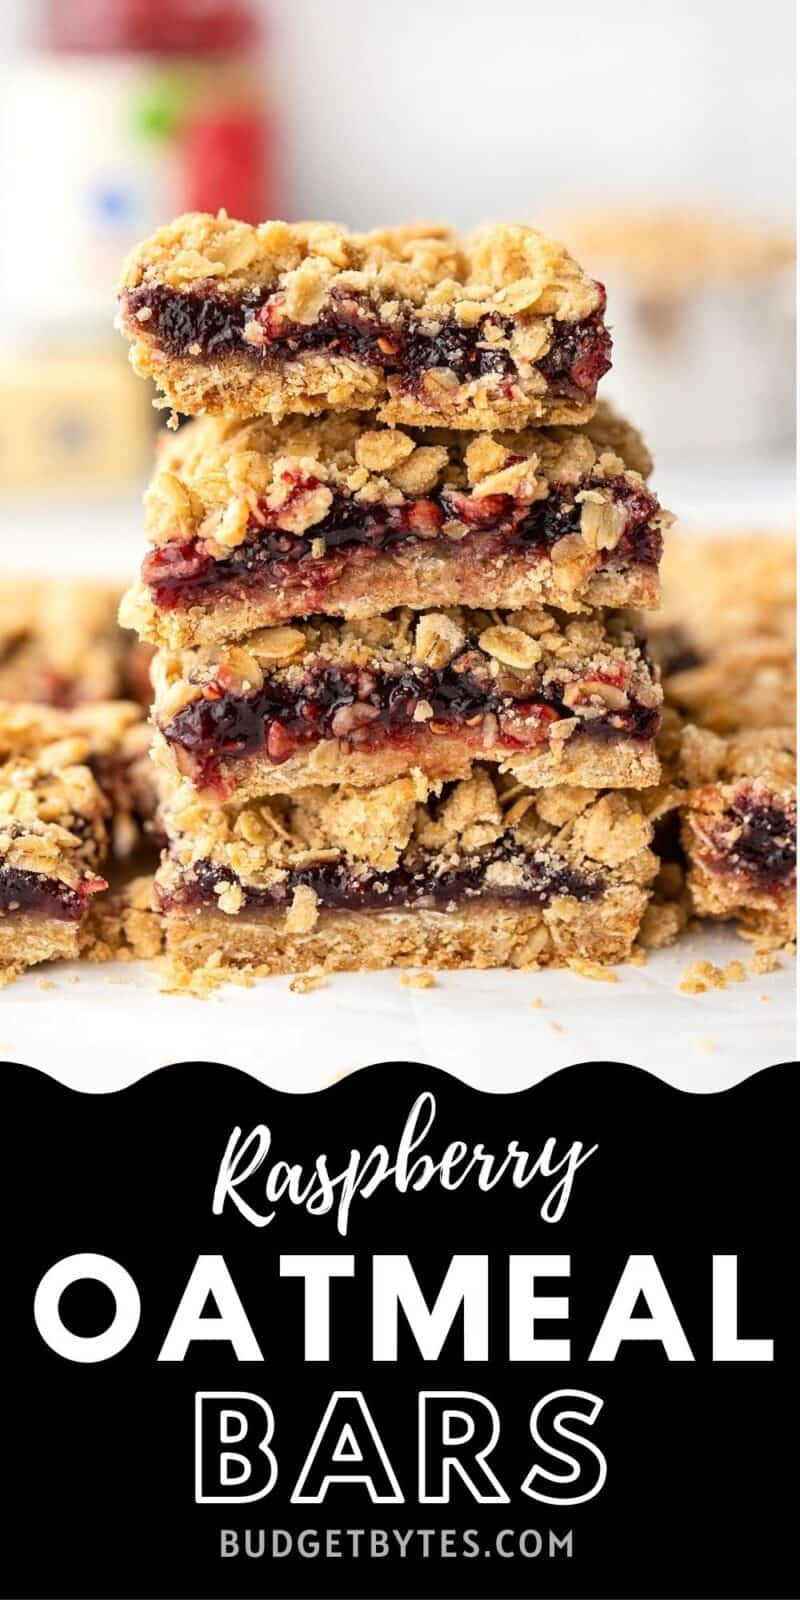 Raspberry Oatmeal Bars stacked, title text at the bottom